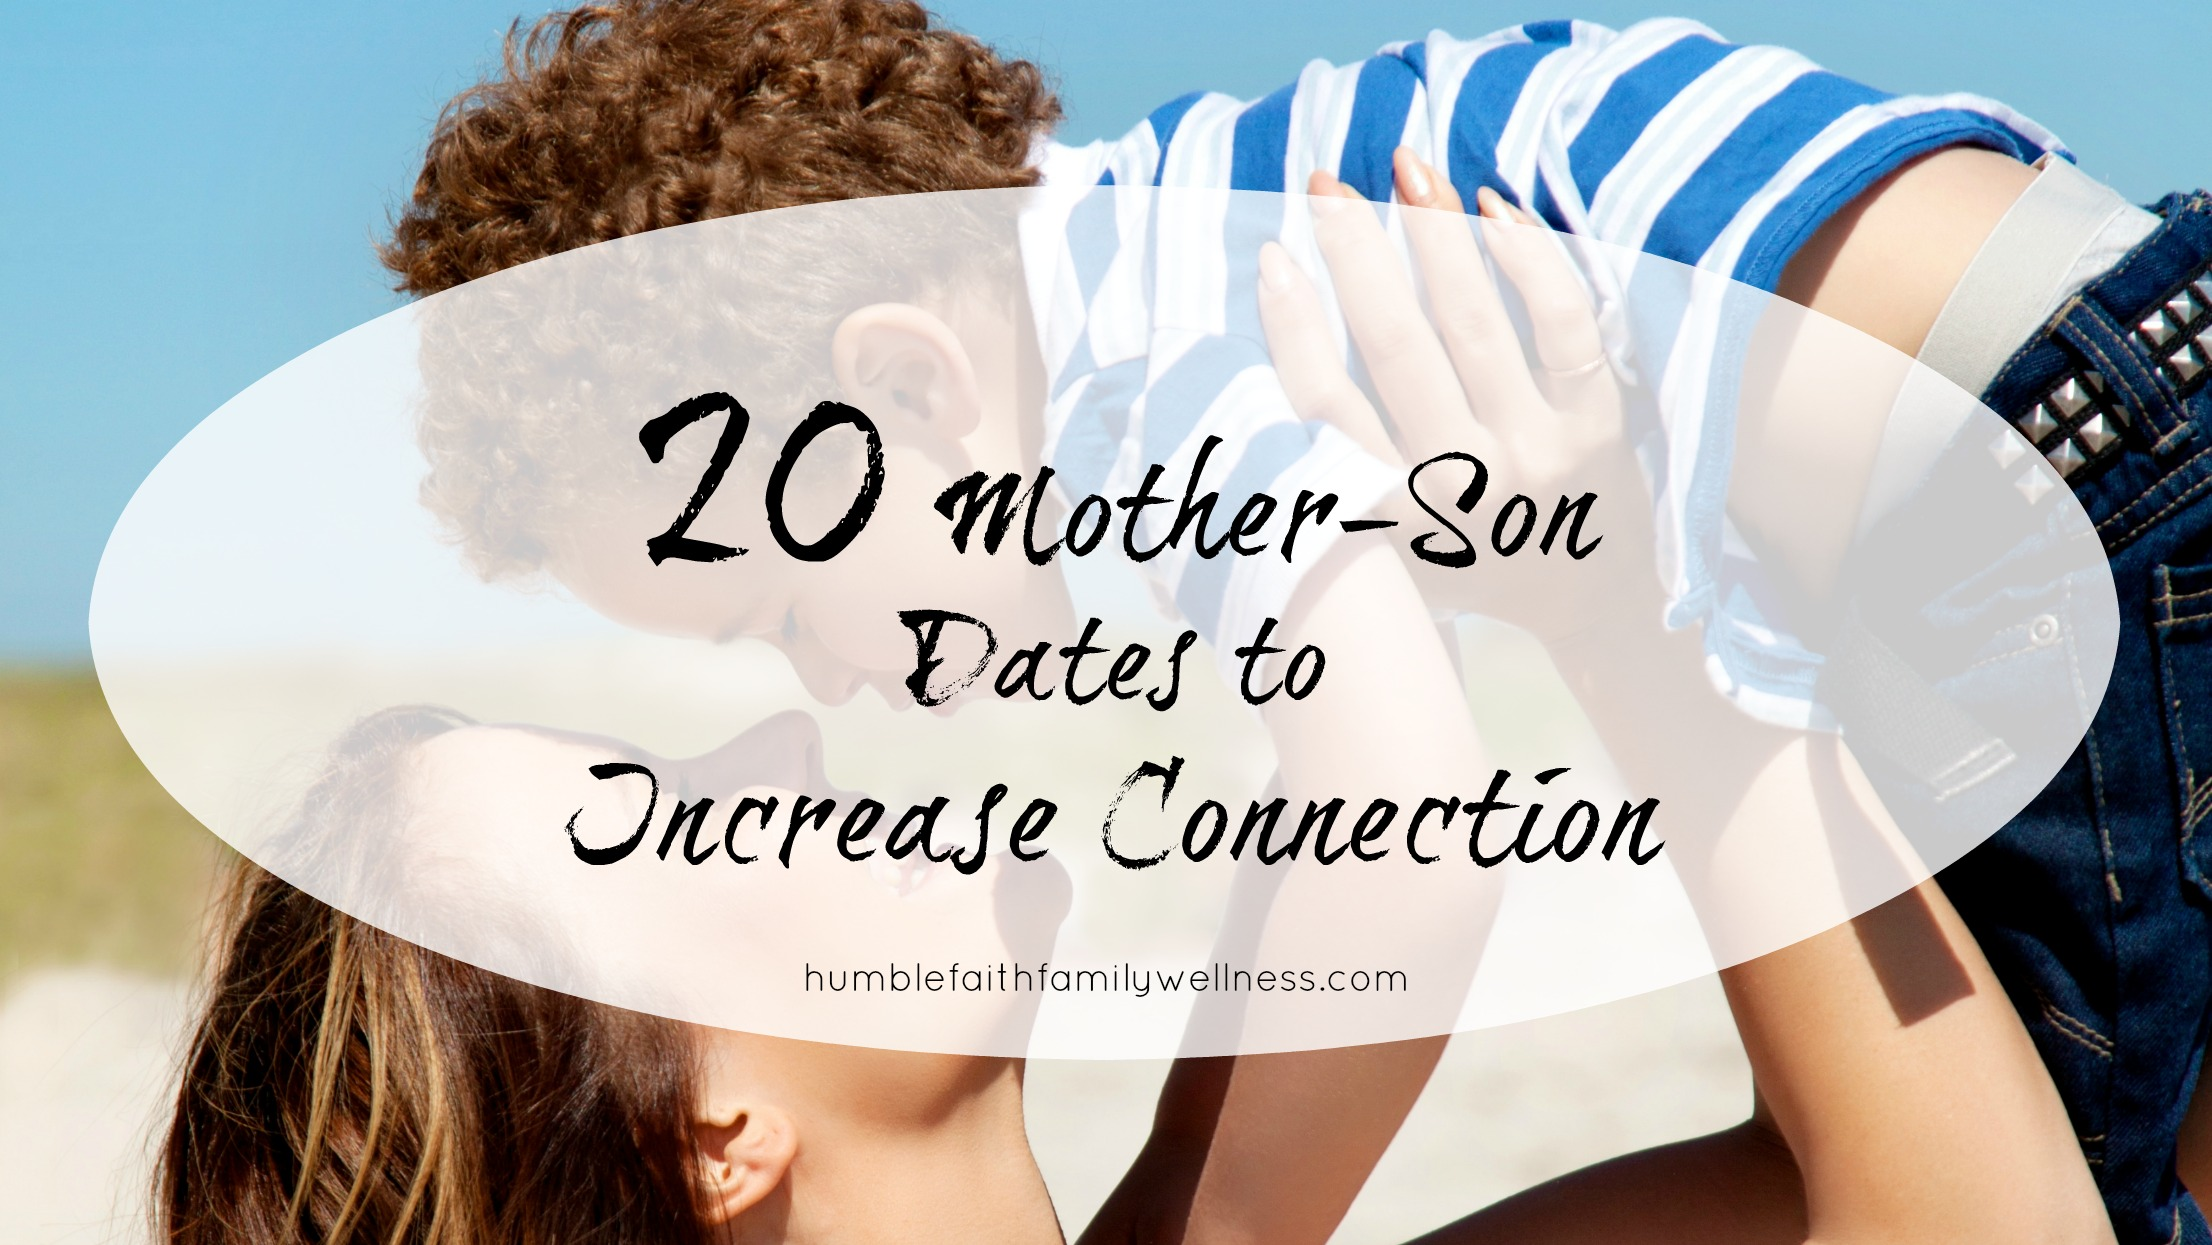 Mother-Son connection, parenting